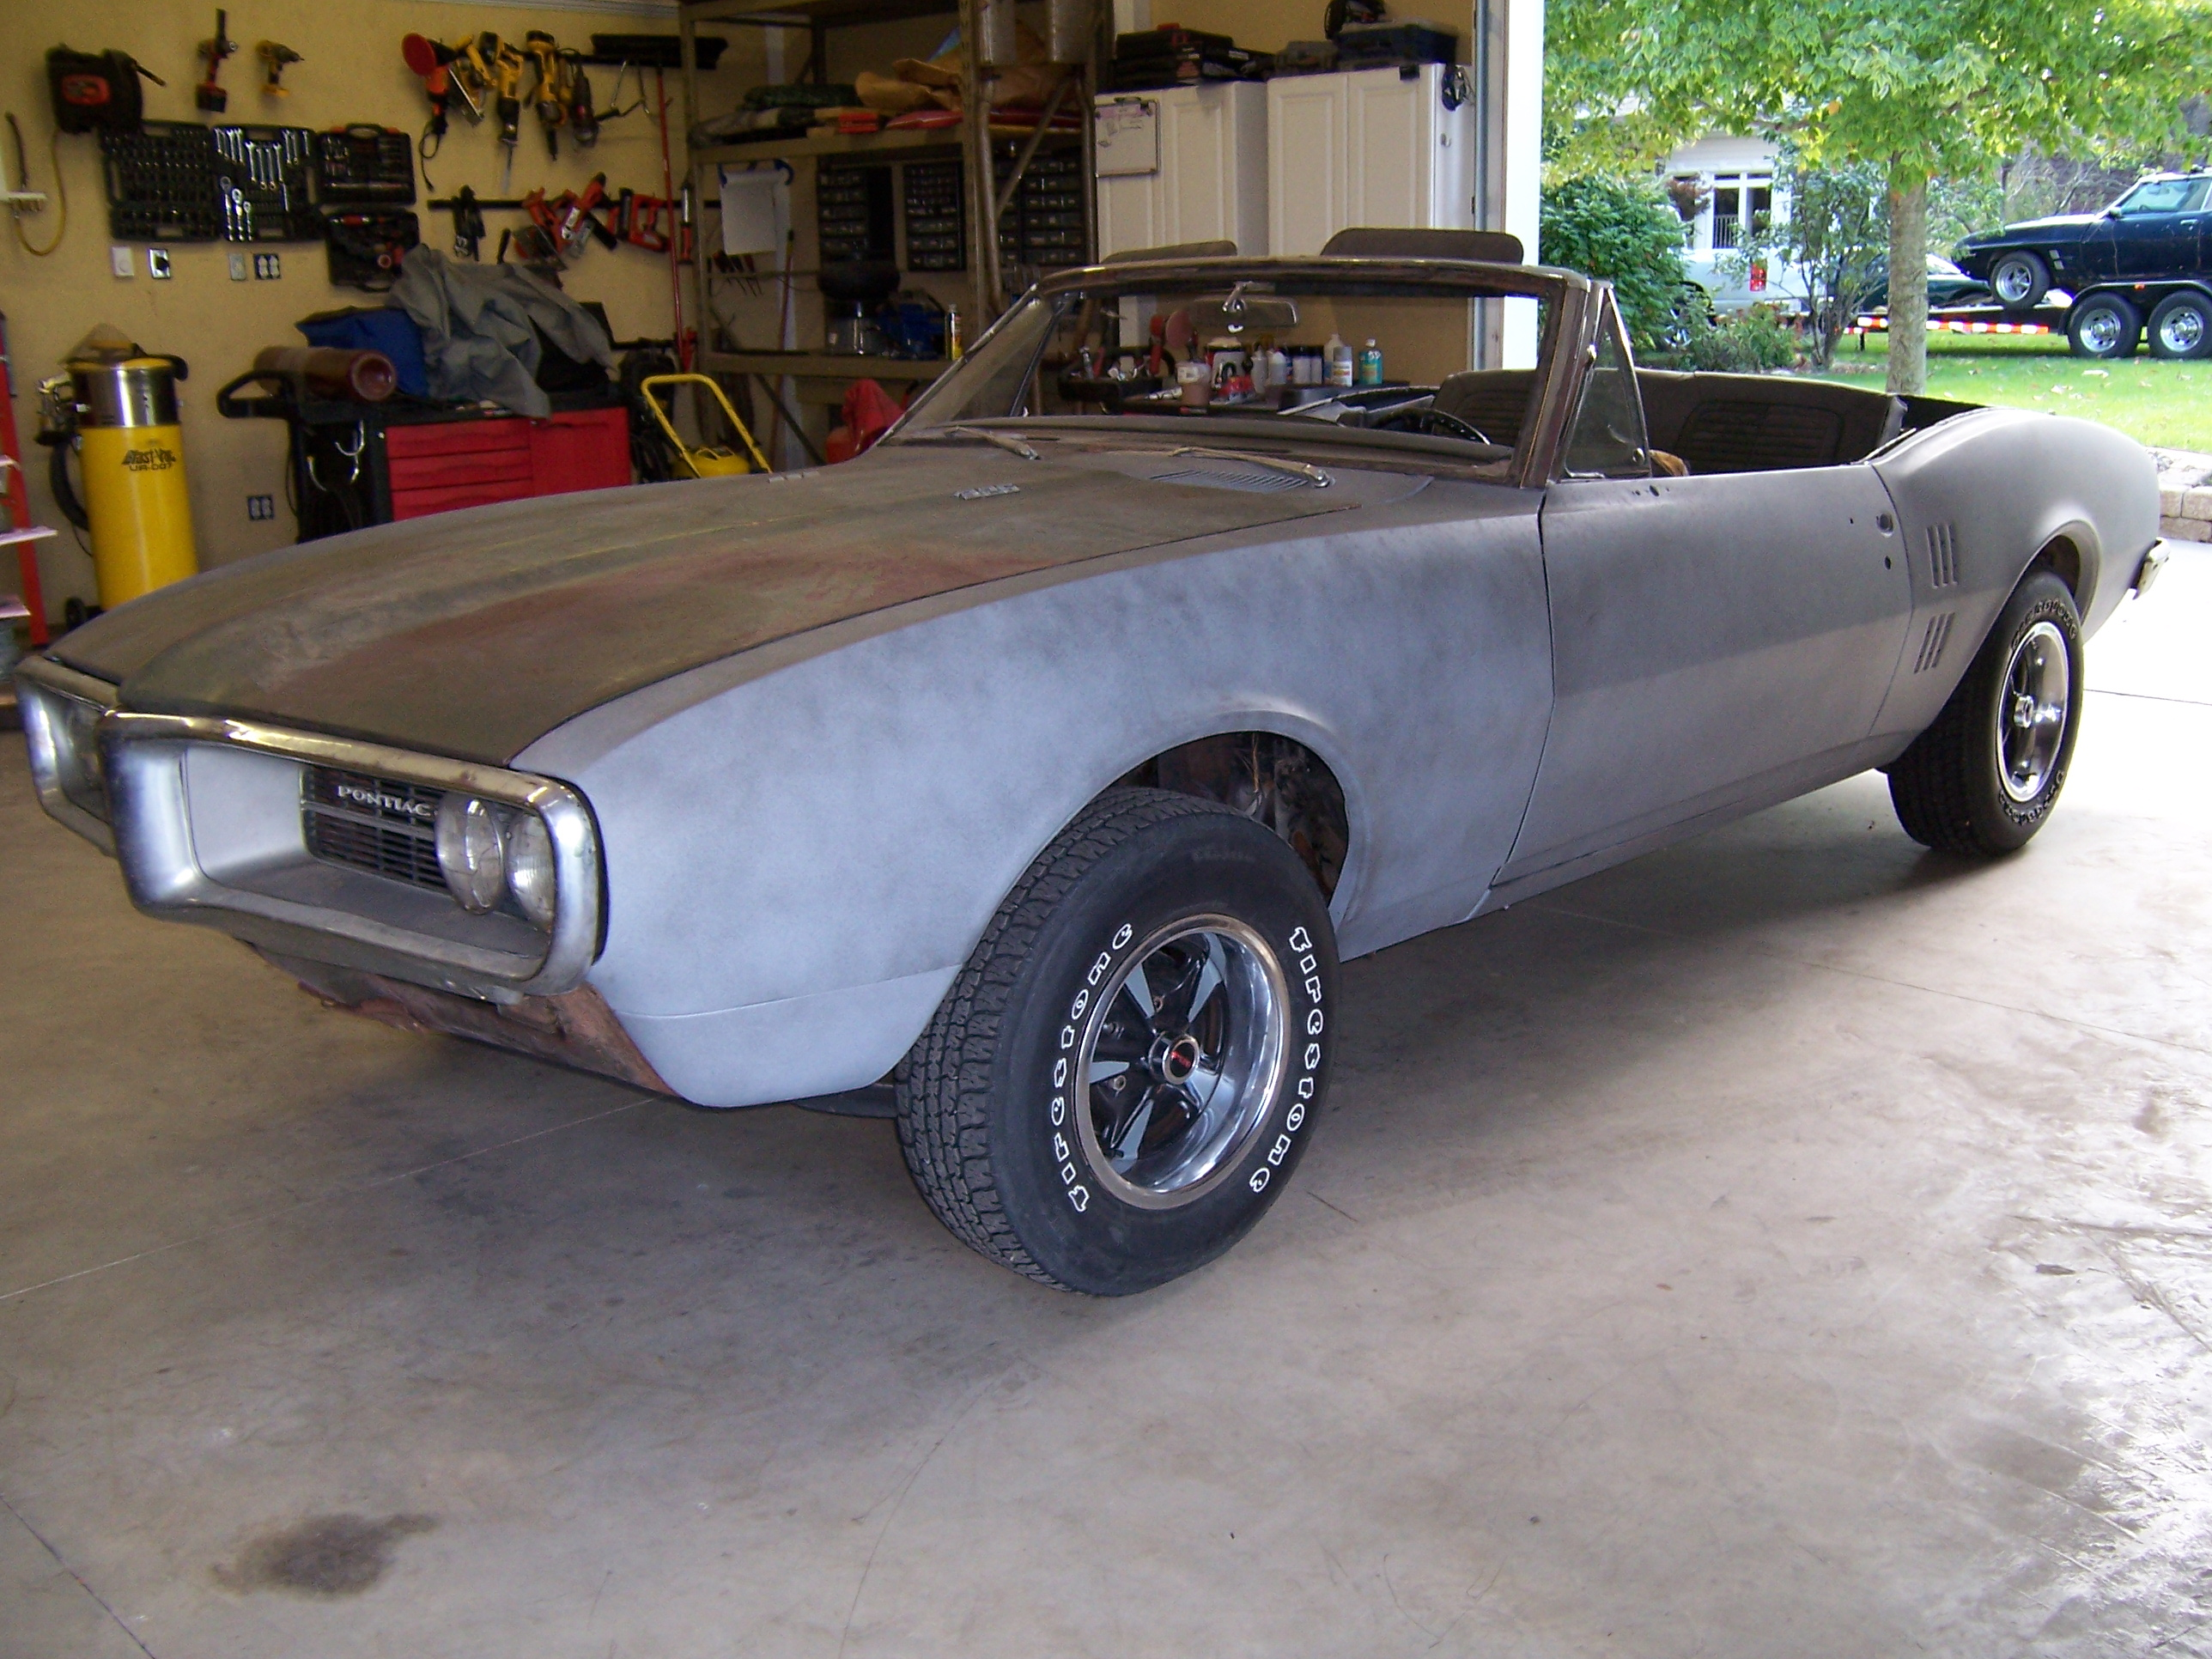 Craigslist Sf Bay Cars By Owner >> 1967 Camaro Convertible Craigslist Project | Autos Weblog